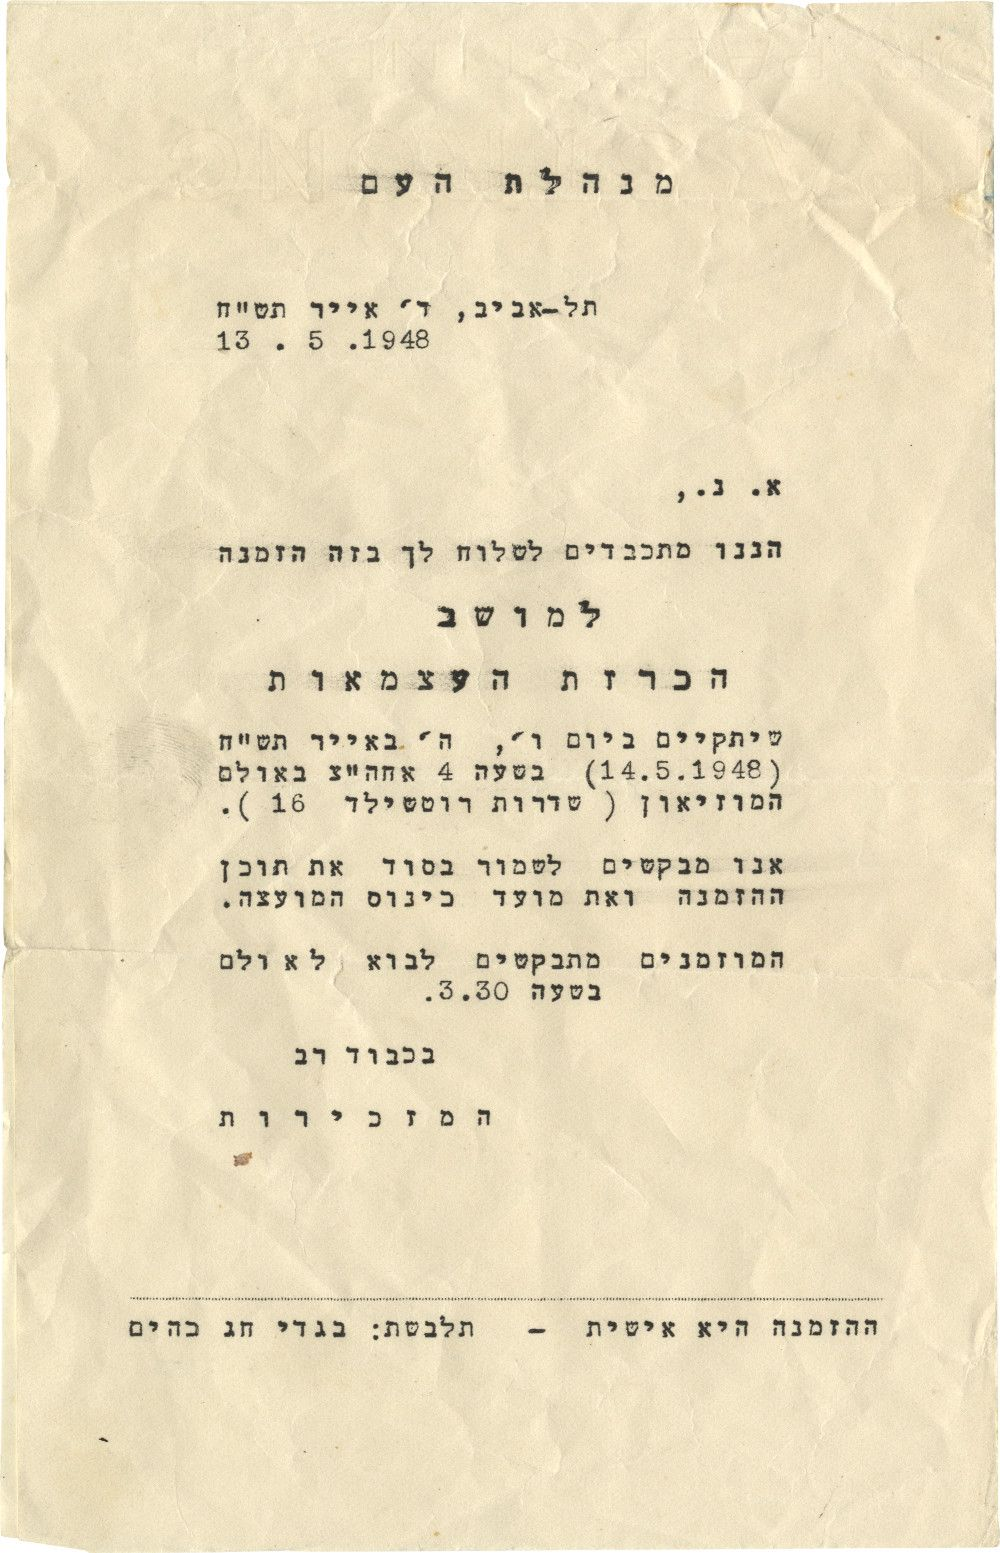 An Invitation to hear the Israel Declaration of Independence, May 14 1948